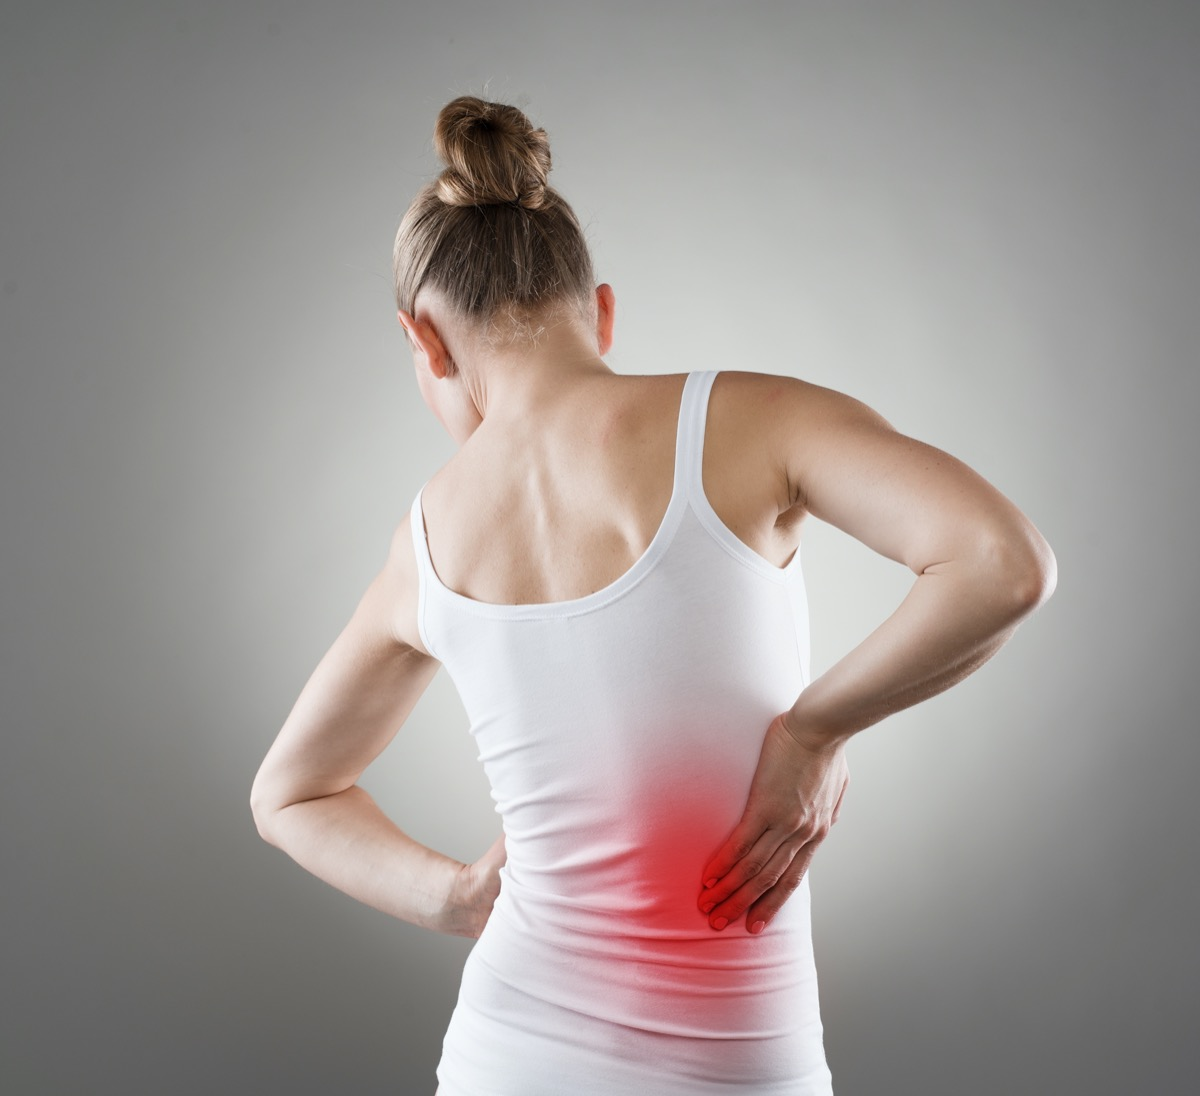 pain. Chronic kidneys disease indicated with red spot on woman's body.